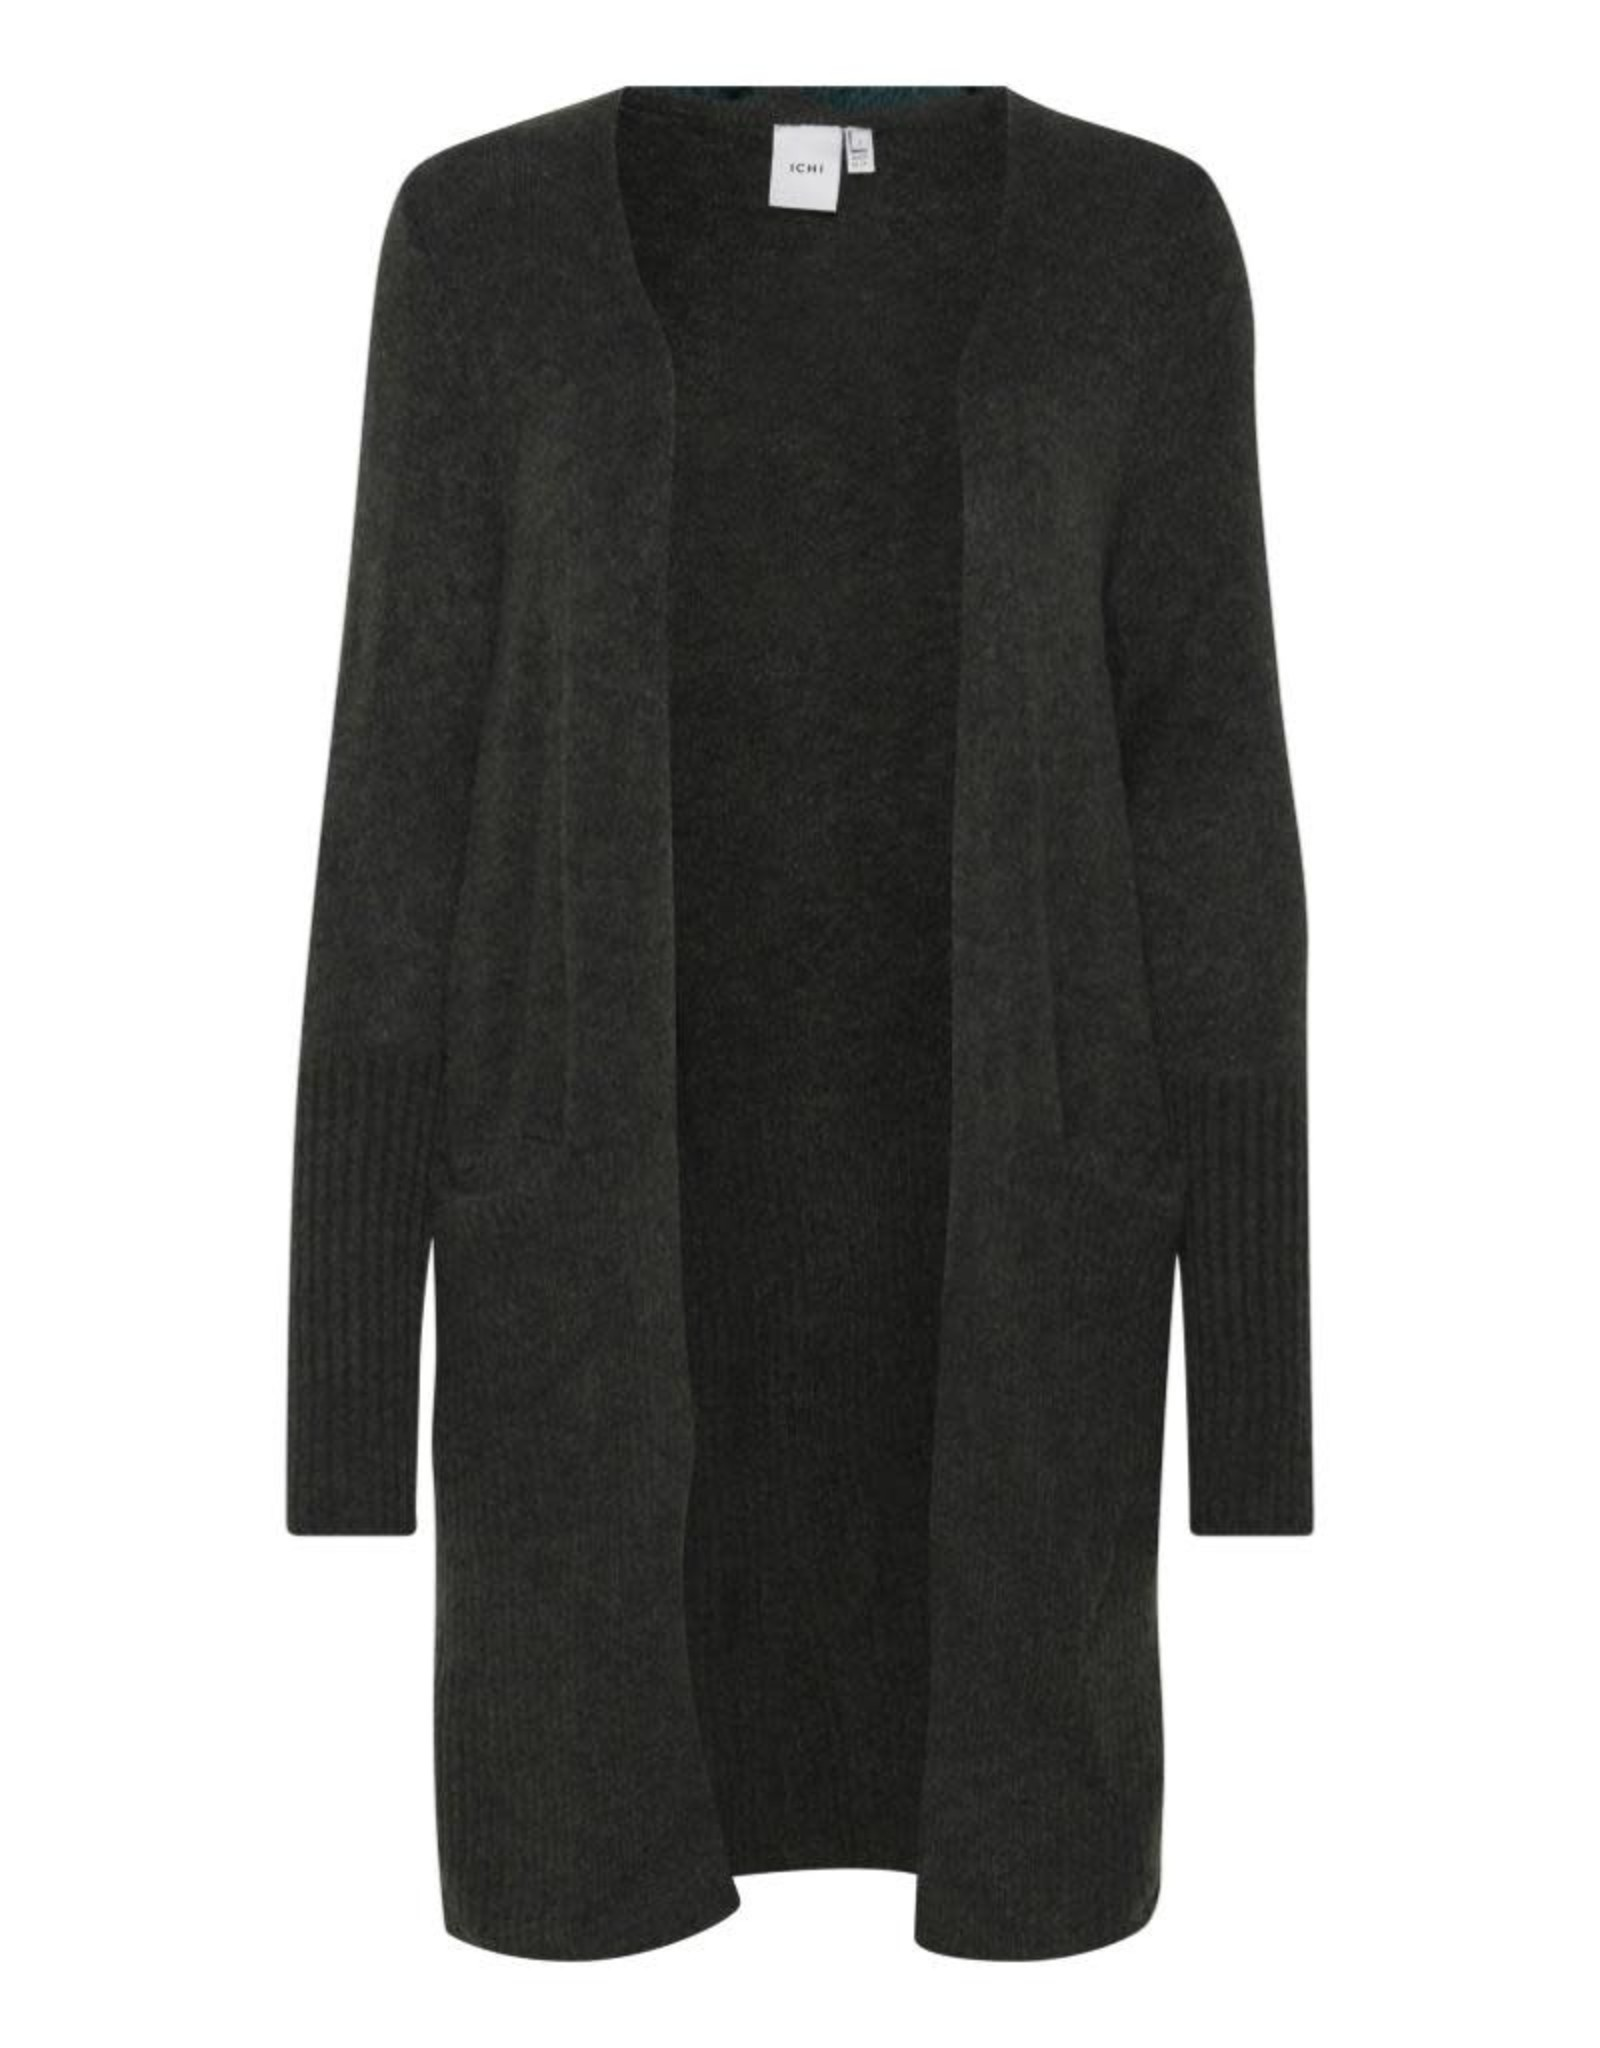 ICHI Ihkamara Long Cardigan